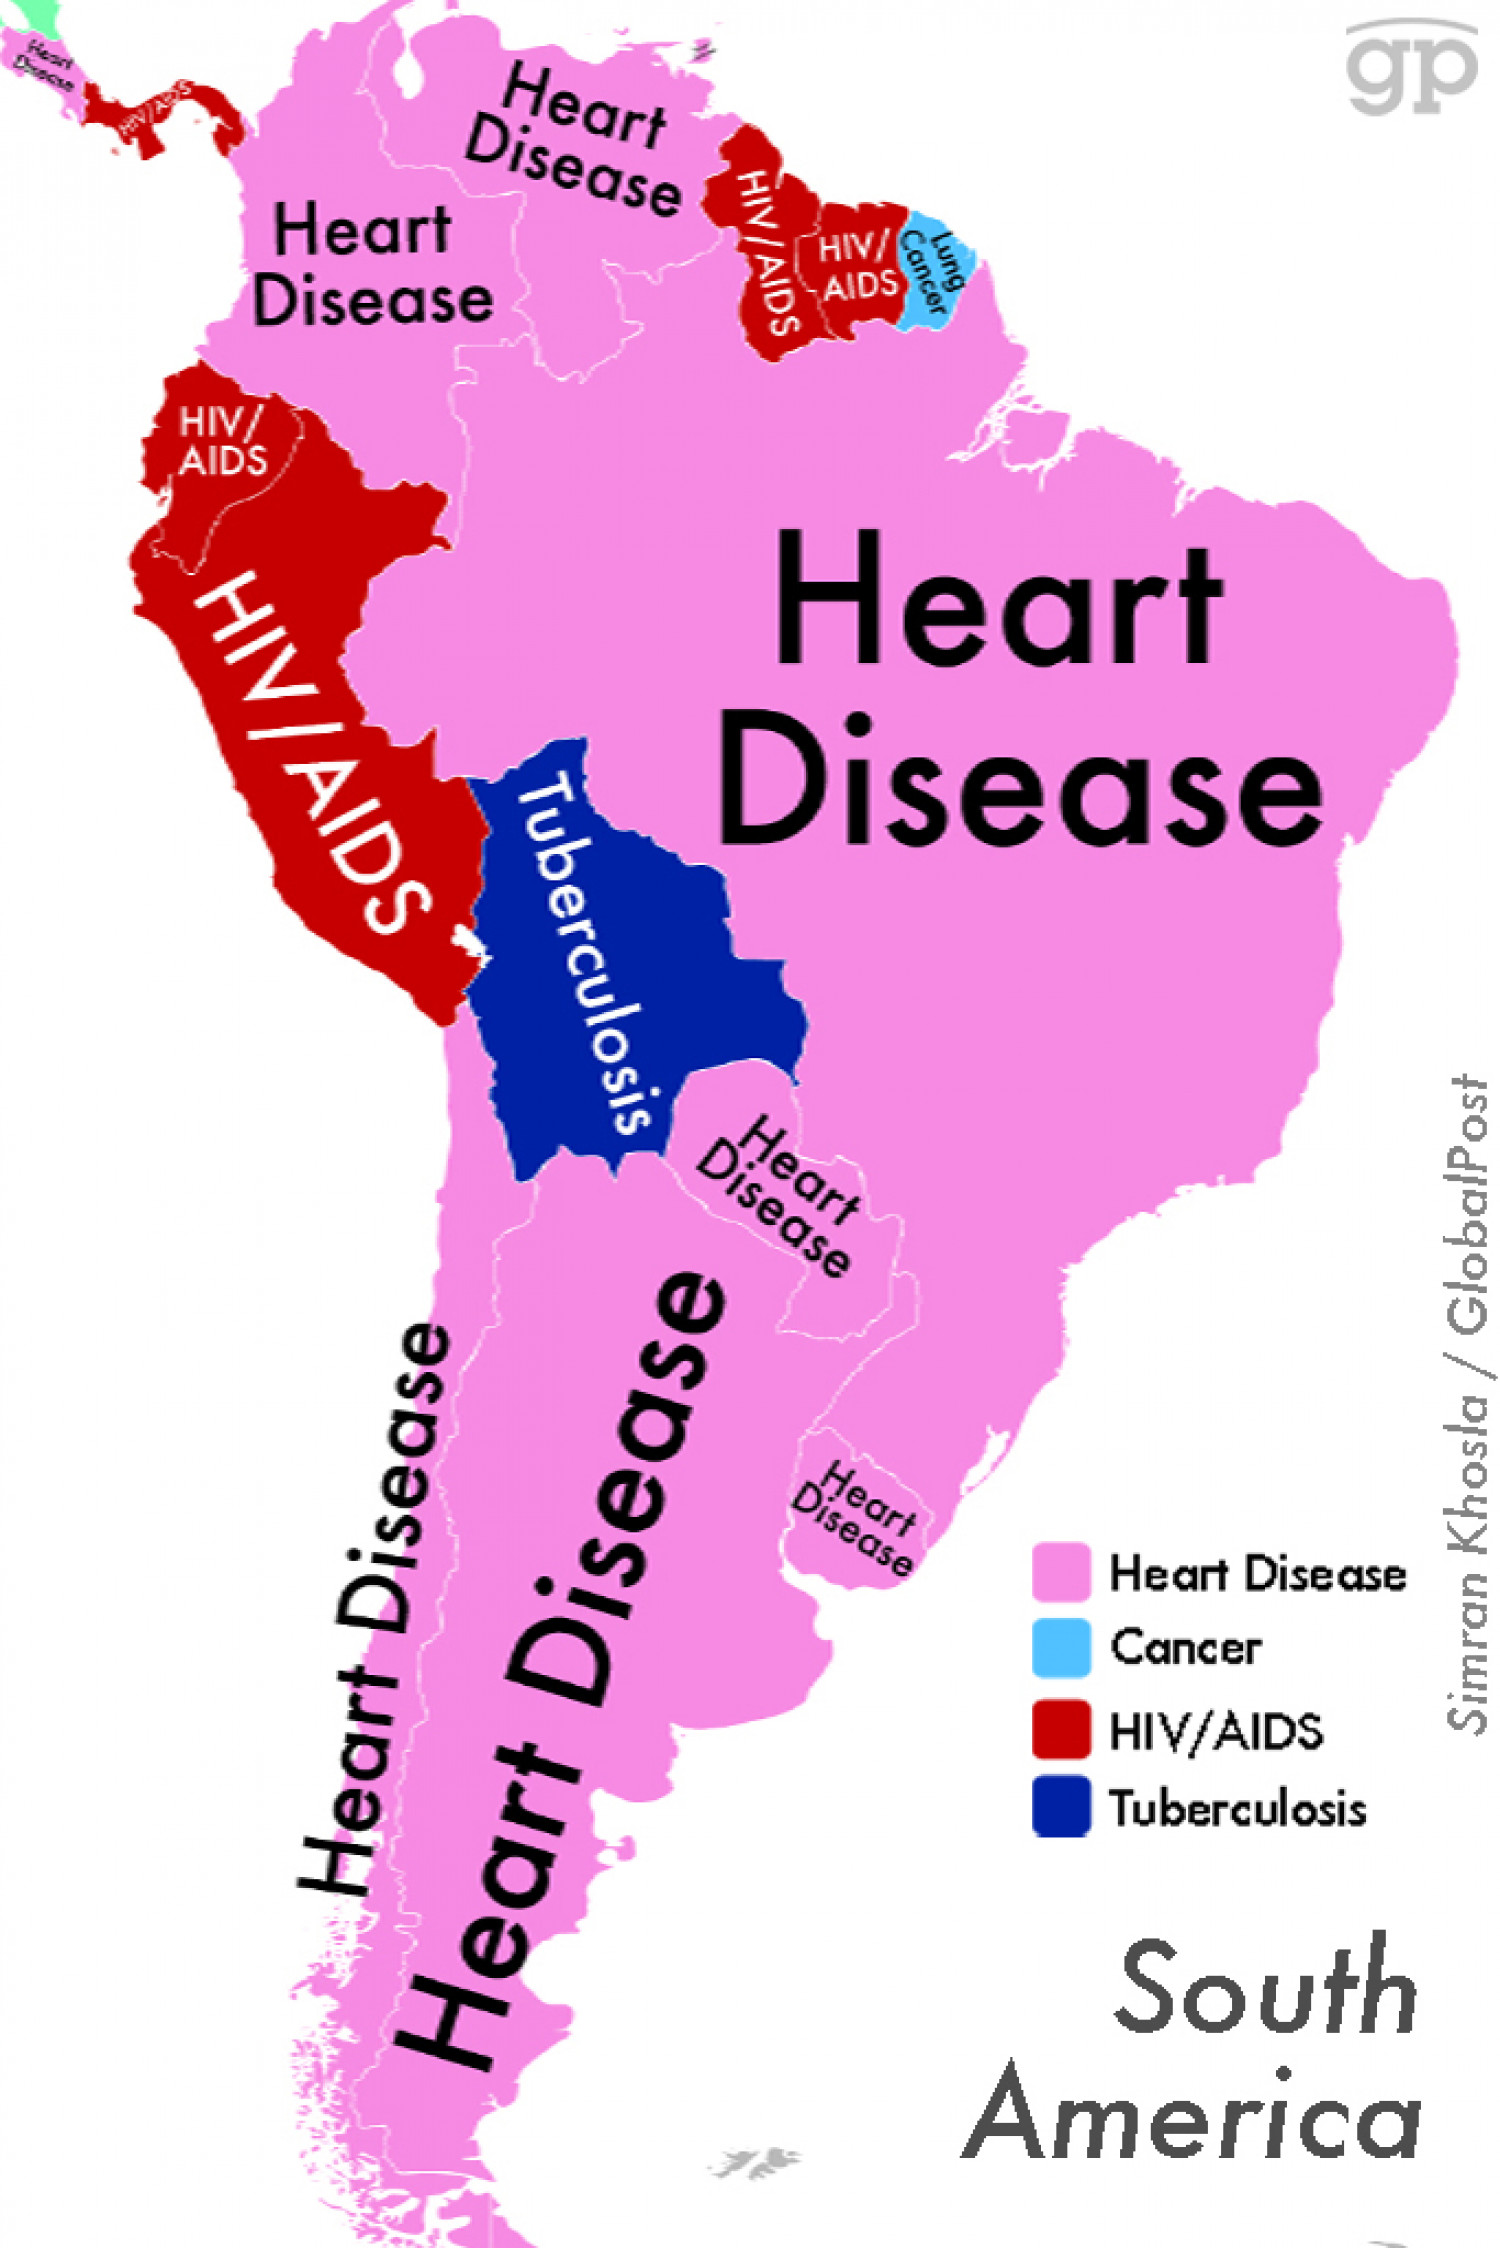 World Diseases (South America)   Visual.ly